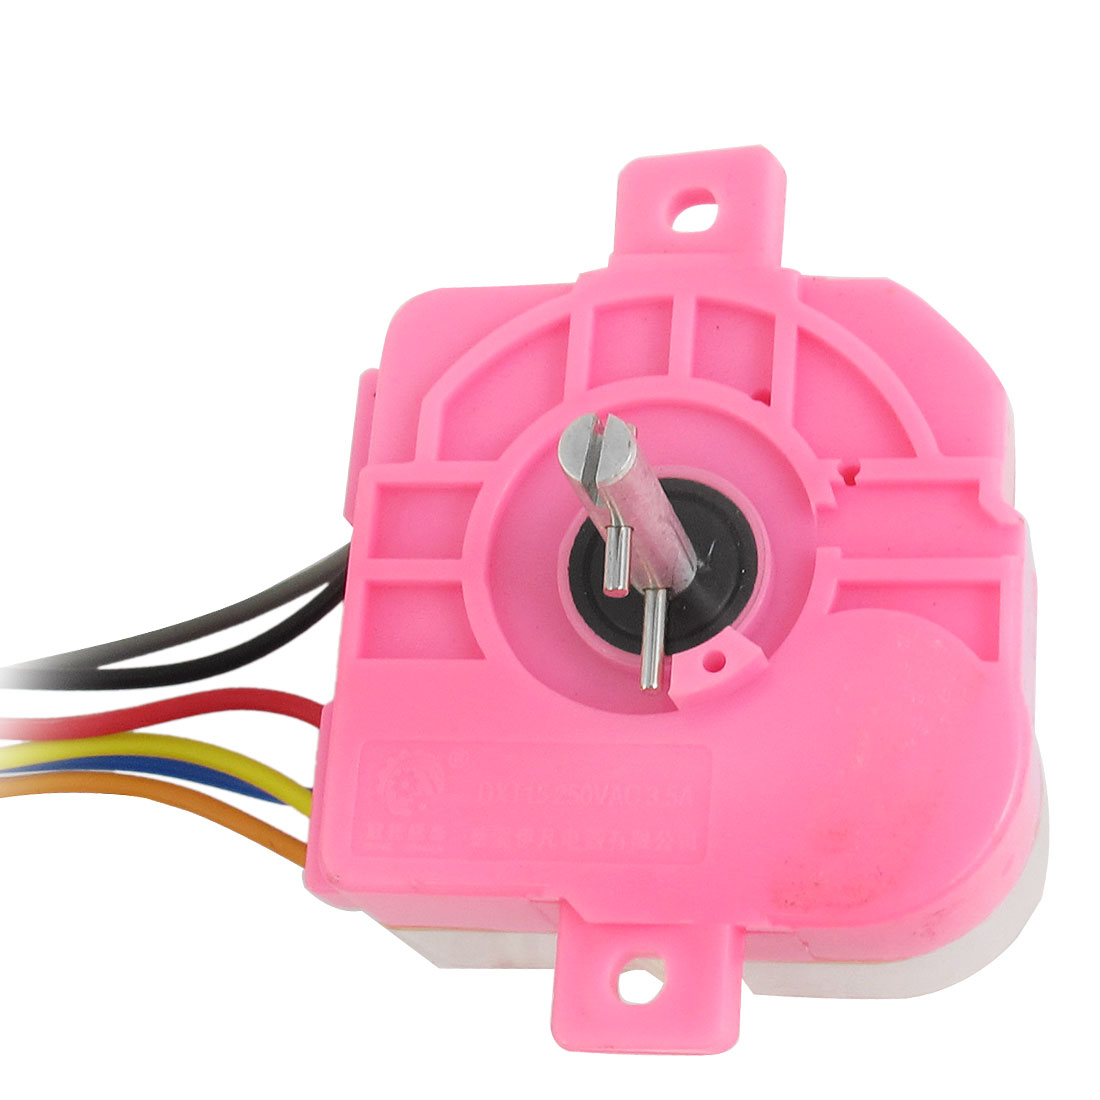 DXT15 AC250V 3.5A 6 Wires 180 Degree Rotary Shaft Washing Machine Washer Timer Pink